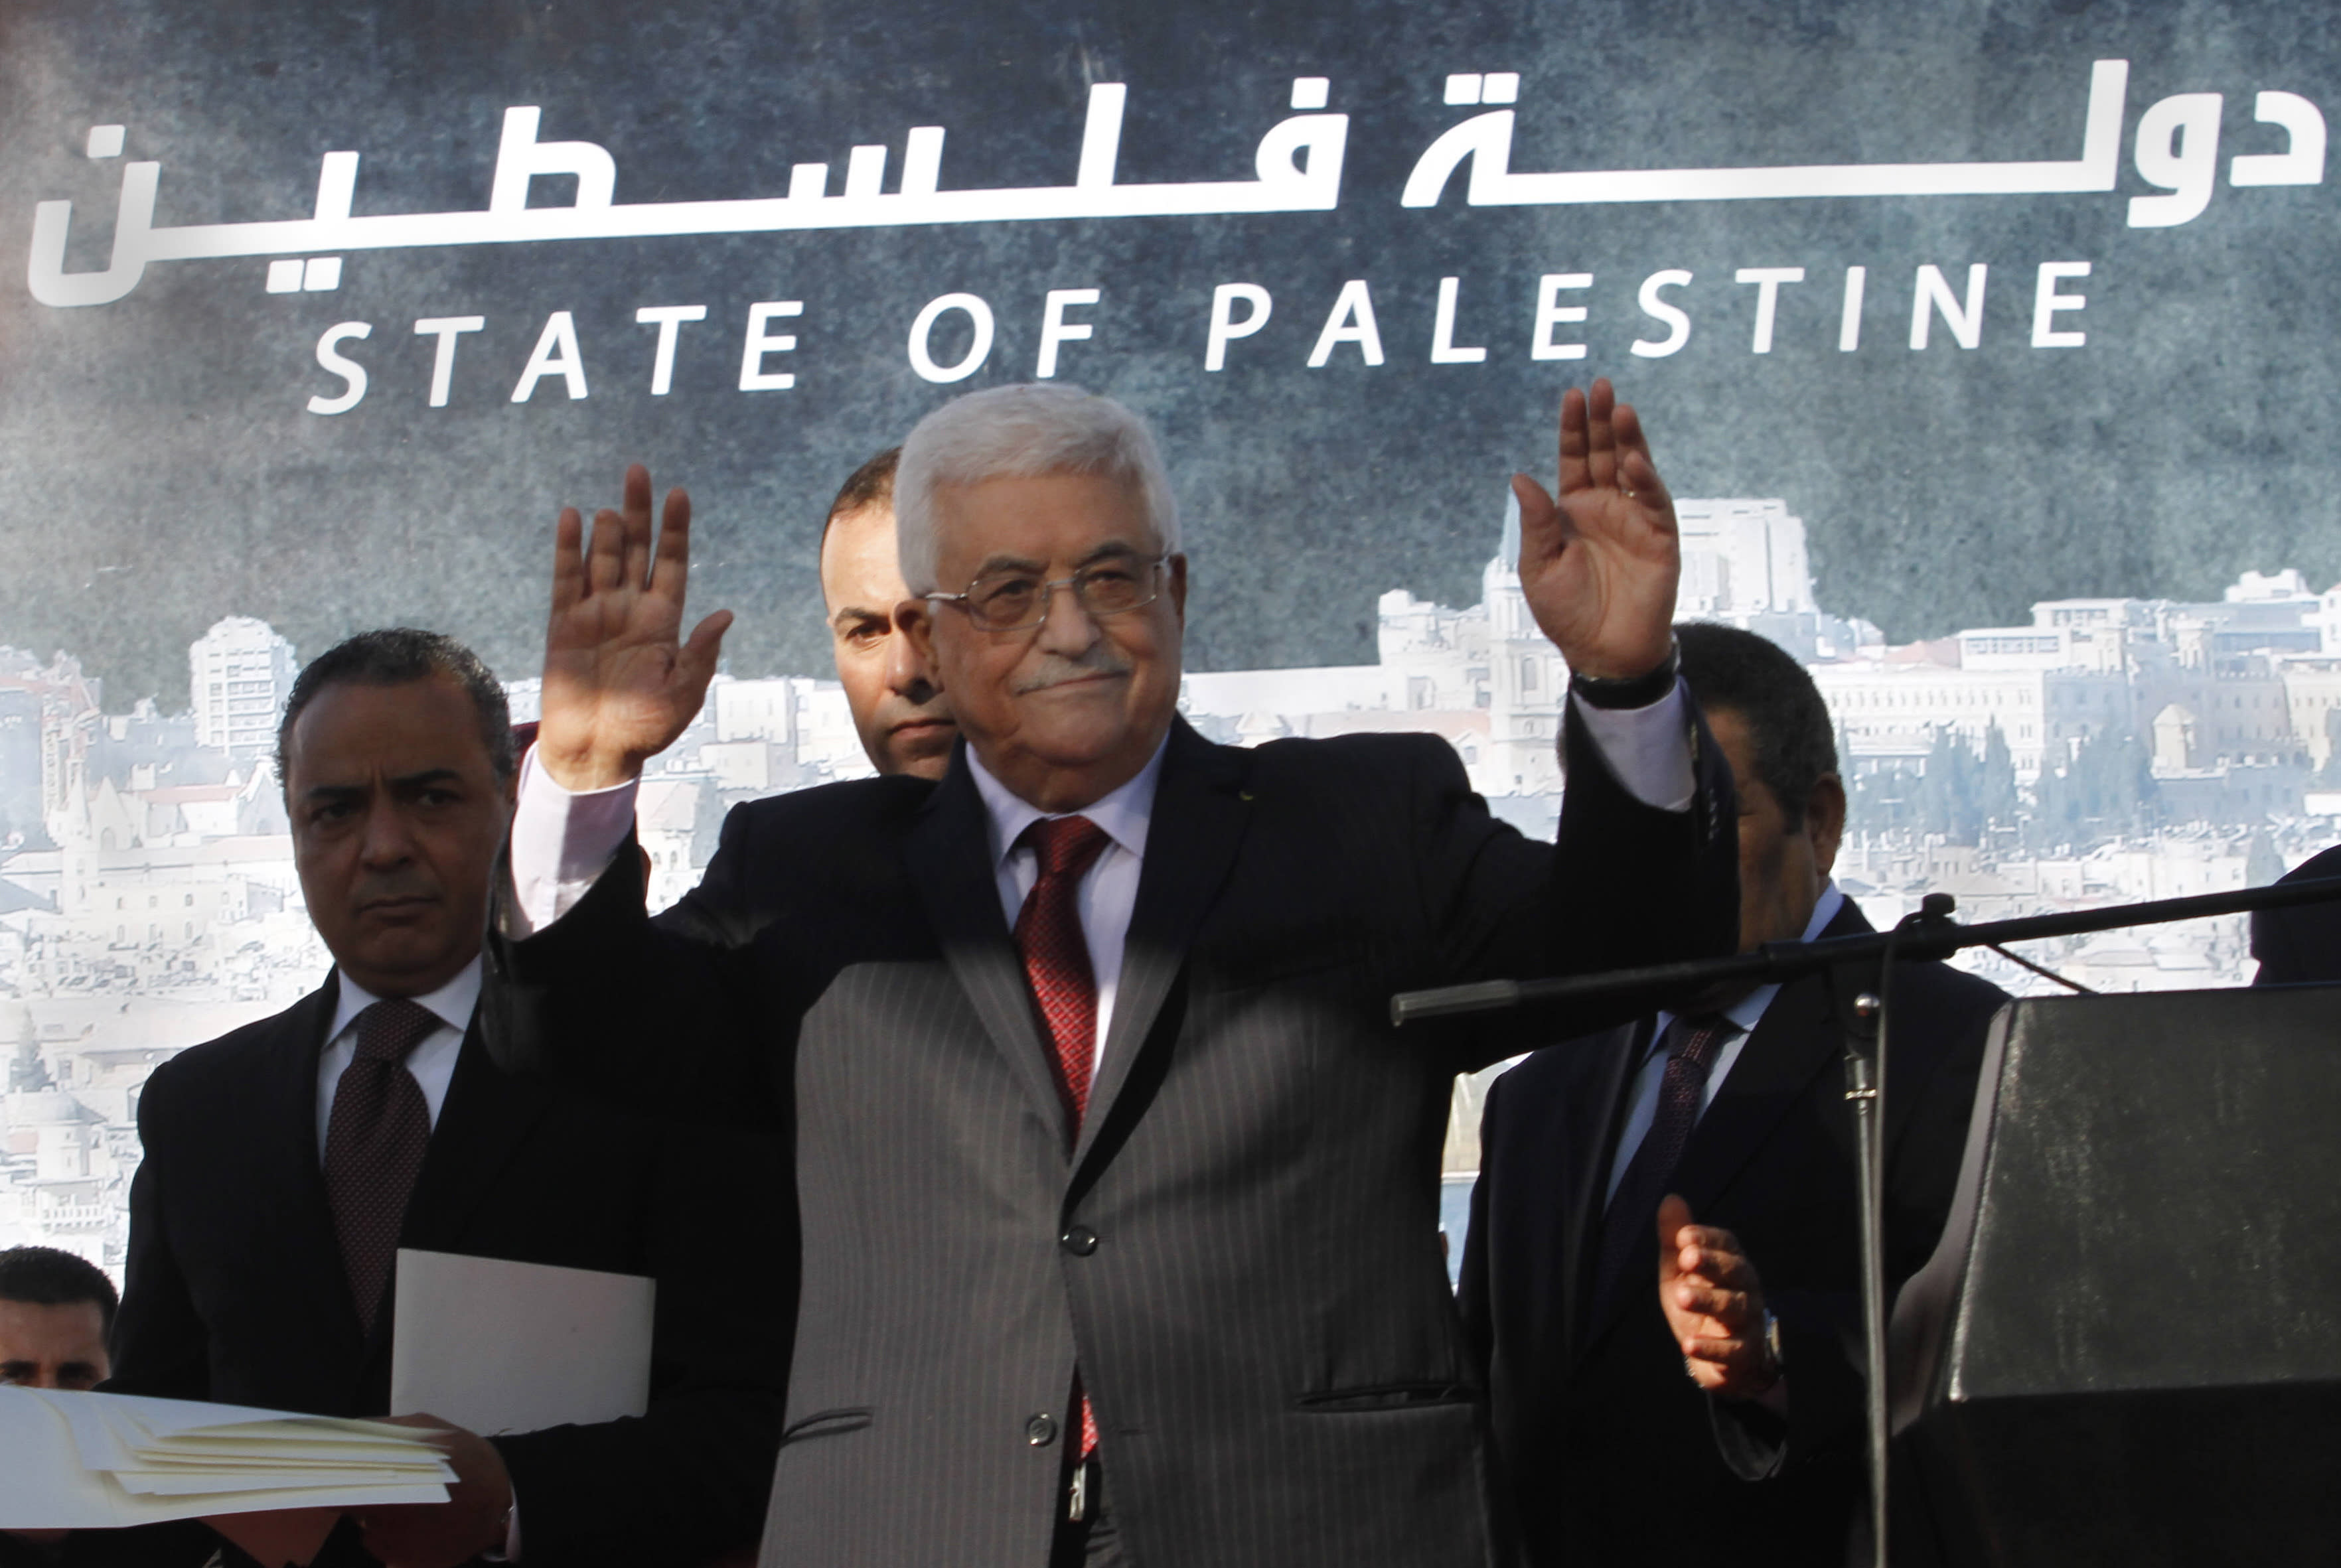 """FILE - In this Dec. 2, 2012 file photo, Palestinian President Mahmoud Abbas waves to the crowd during celebrations for their successful bid to win U.N. statehood recognition. Palestinian officials said Monday Jan. 7, 2013, they will not rush to issue new passports and ID cards with the emblem """"State of Palestine"""" to avoid confrontation with Israel. Last week, Palestinian President Mahmoud Abbas decreed that in official documents """"State of Palestine"""" must replace """"Palestinian Authority,"""" the name of his self-rule government. (AP Photo/Nasser Shiyoukhi, File)"""